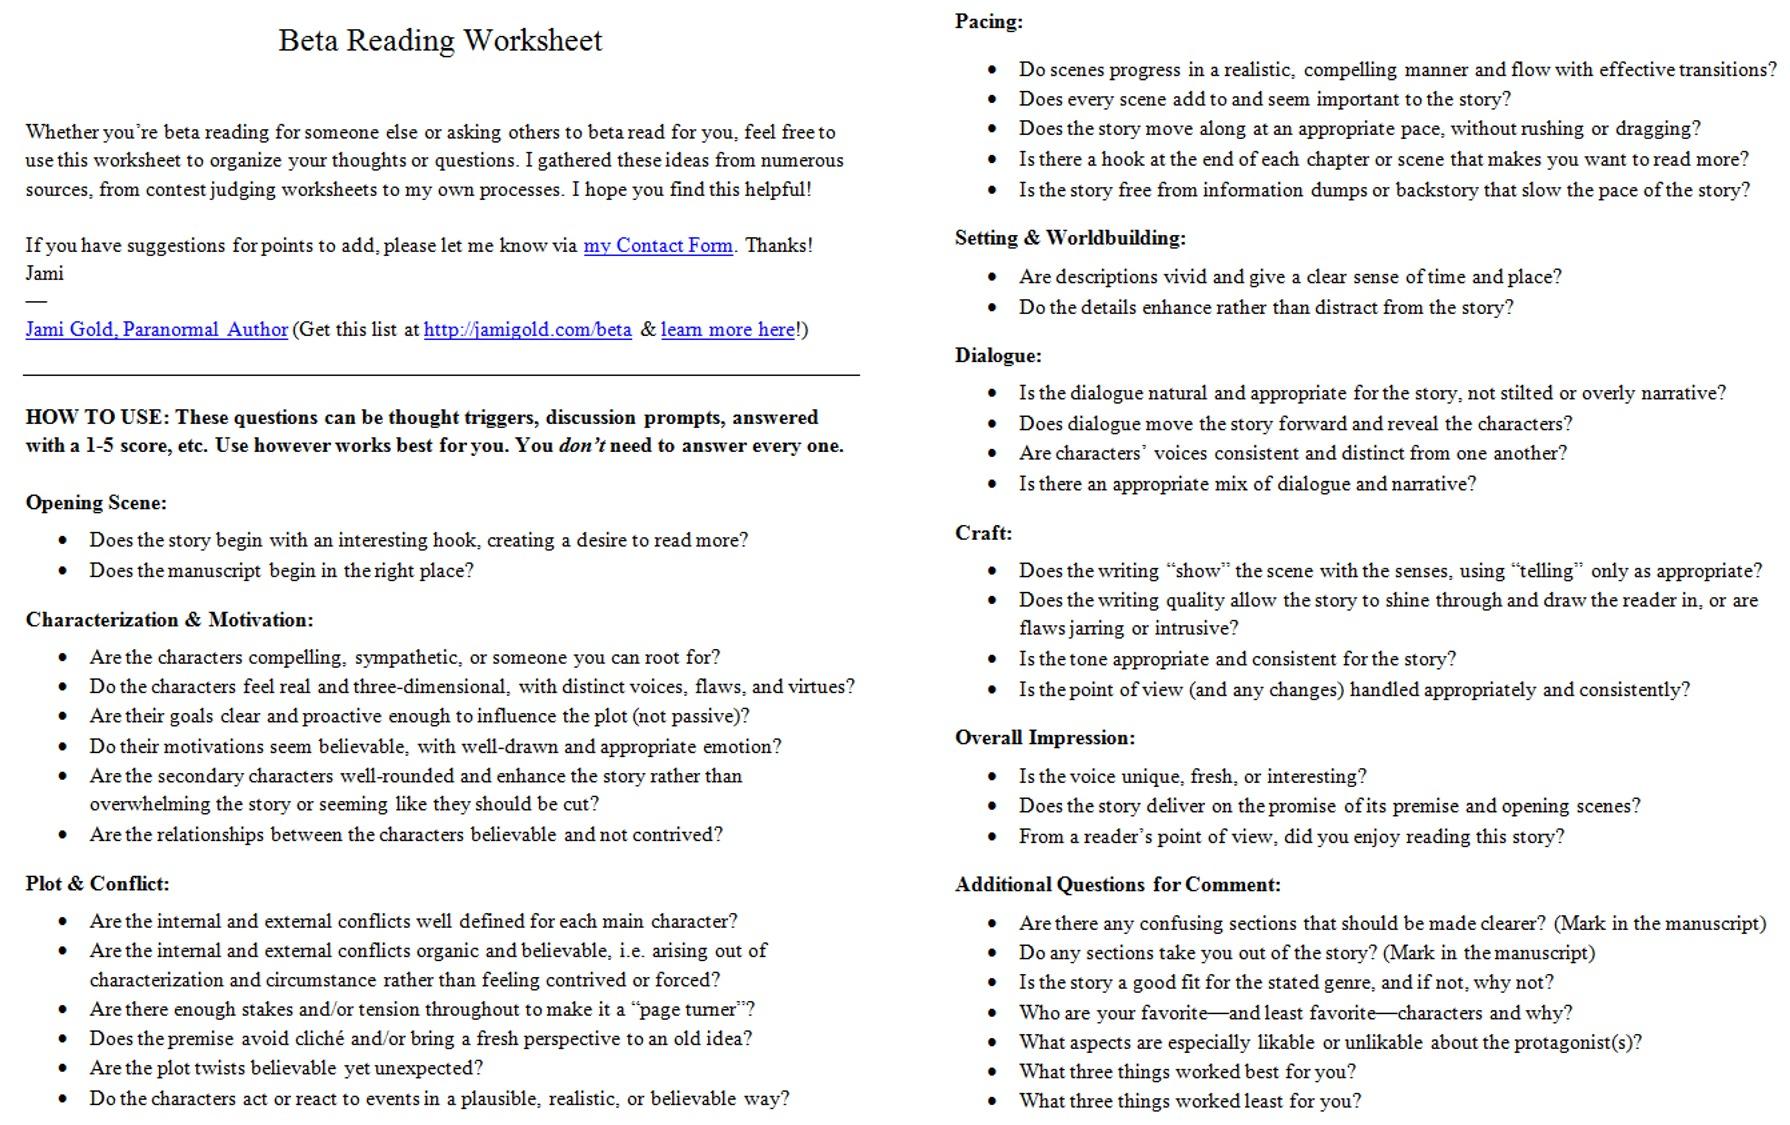 Weirdmailus  Stunning Worksheets For Writers  Jami Gold Paranormal Author With Remarkable Screen Shot Of The Twopage Beta Reading Worksheet With Appealing Creating Worksheets Also Endocrine System Worksheets In Addition Worksheets Fun And Reading Comprehension St Grade Worksheets As Well As Simple Order Of Operations Worksheets Additionally Pictograph Worksheets Rd Grade From Jamigoldcom With Weirdmailus  Remarkable Worksheets For Writers  Jami Gold Paranormal Author With Appealing Screen Shot Of The Twopage Beta Reading Worksheet And Stunning Creating Worksheets Also Endocrine System Worksheets In Addition Worksheets Fun From Jamigoldcom